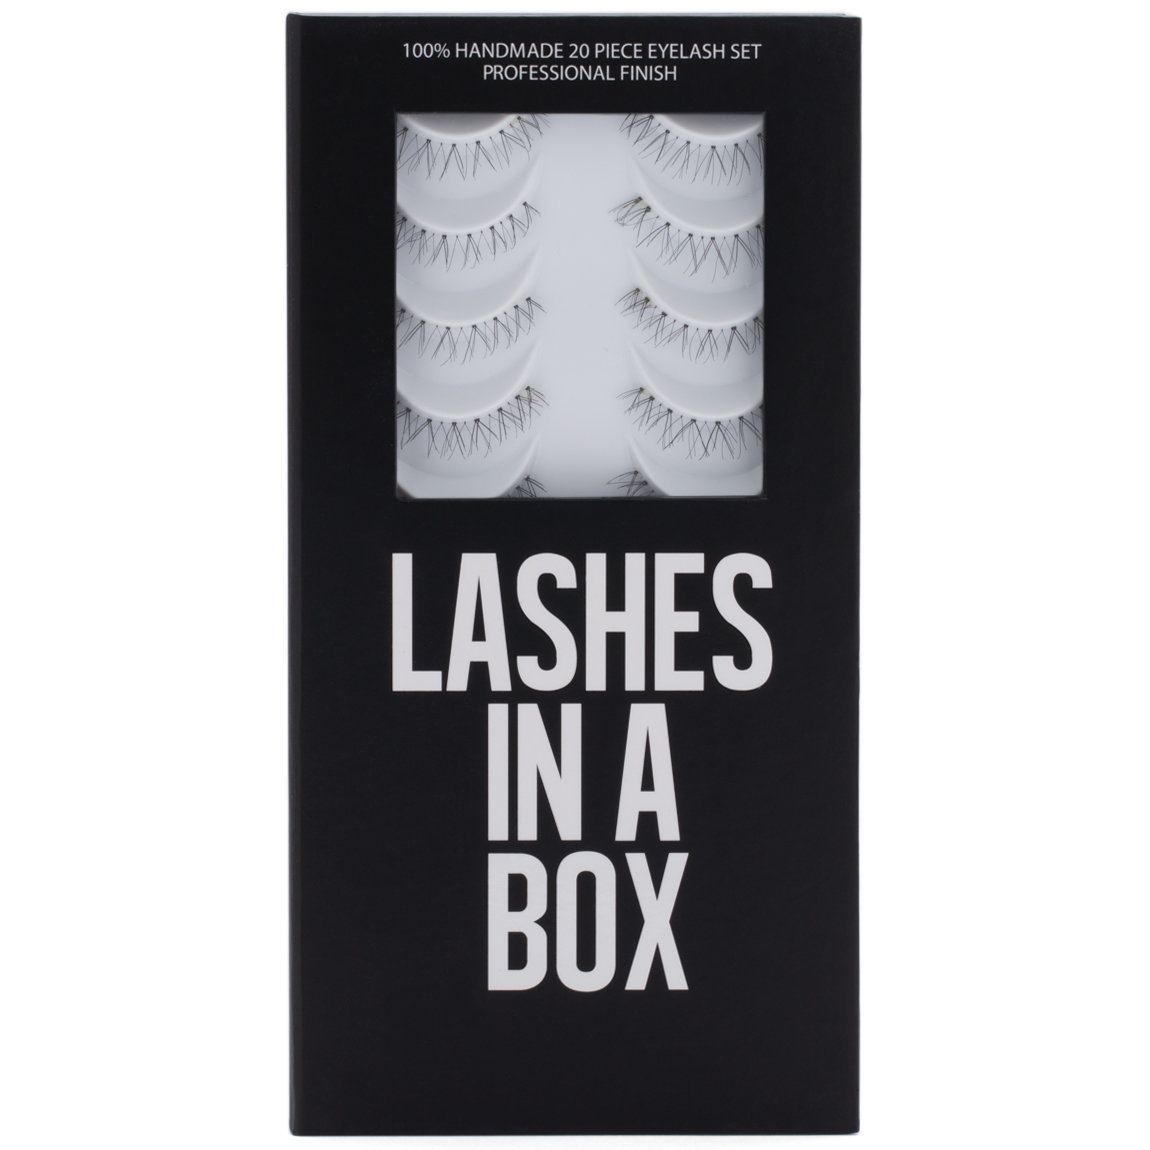 LASHES IN A BOX Lower Lash N°3 product swatch.